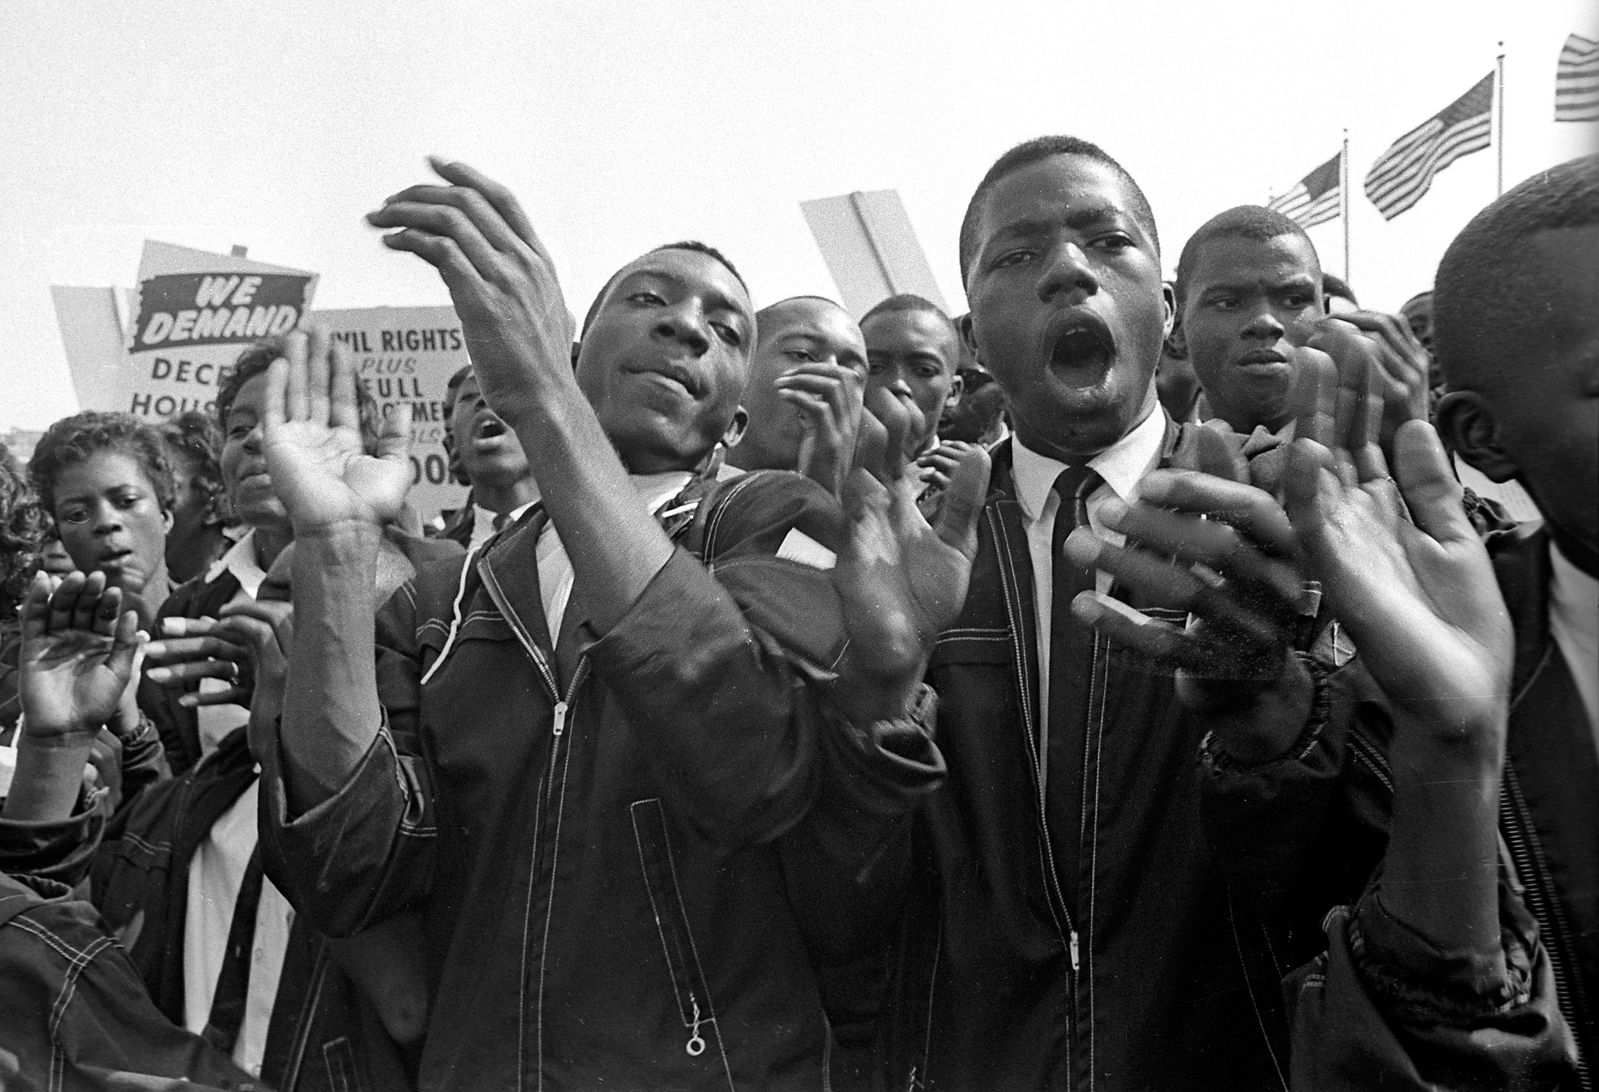 This Virtual Reality Exhibit Brings Martin Luther King Jr.'s 'I Have a Dream' Speech to Life